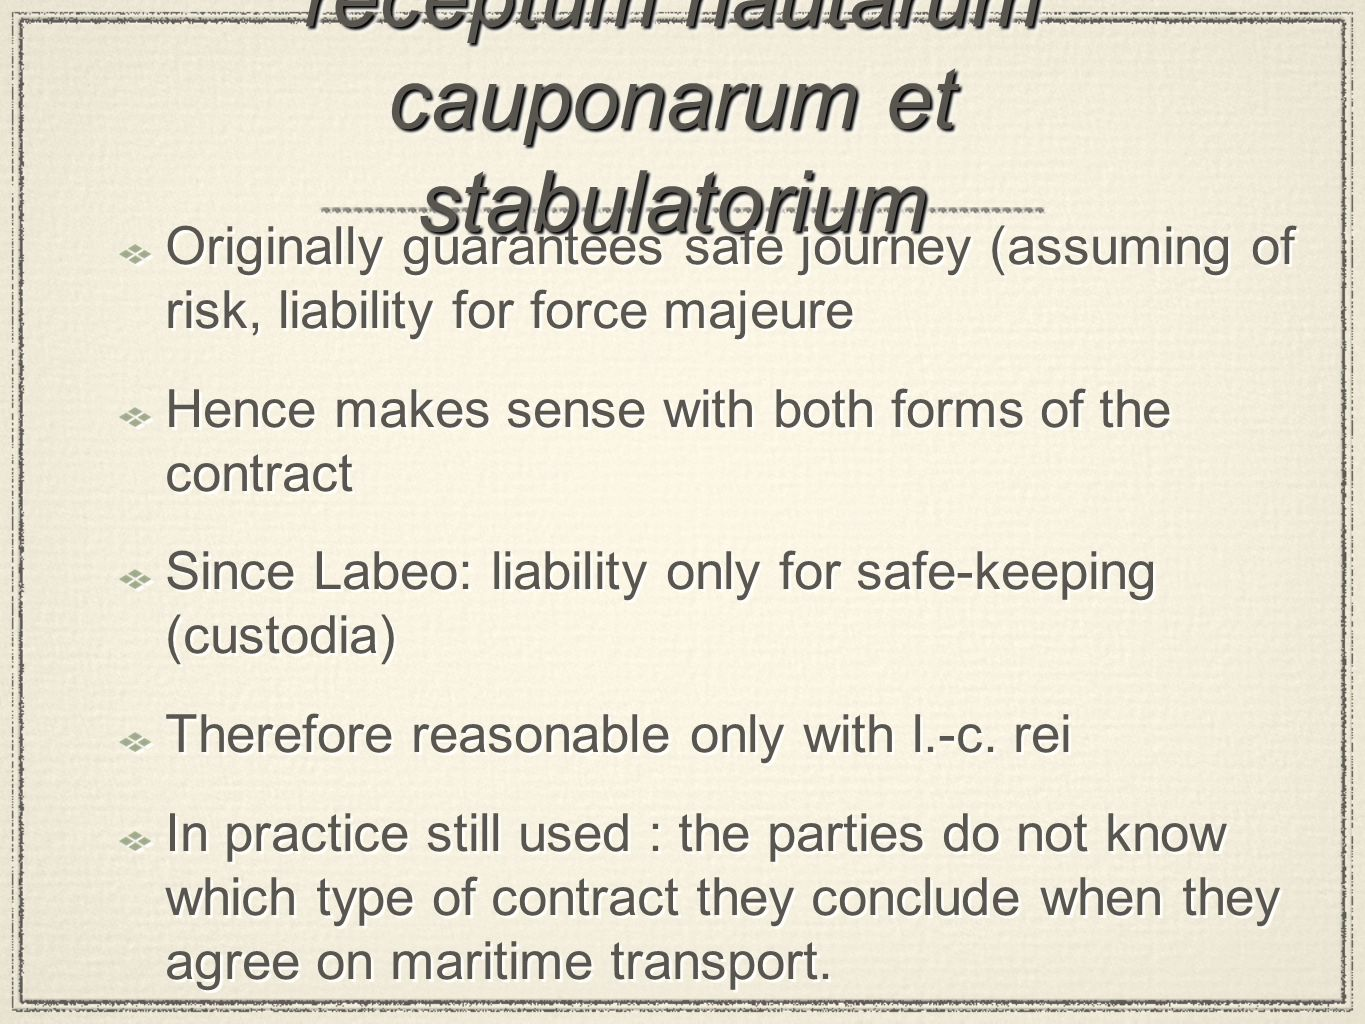 receptum nautarum cauponarum et stabulatorium Originally guarantees safe journey (assuming of risk, liability for force majeure Hence makes sense with both forms of the contract Since Labeo: liability only for safe-keeping (custodia) Therefore reasonable only with l.-c.